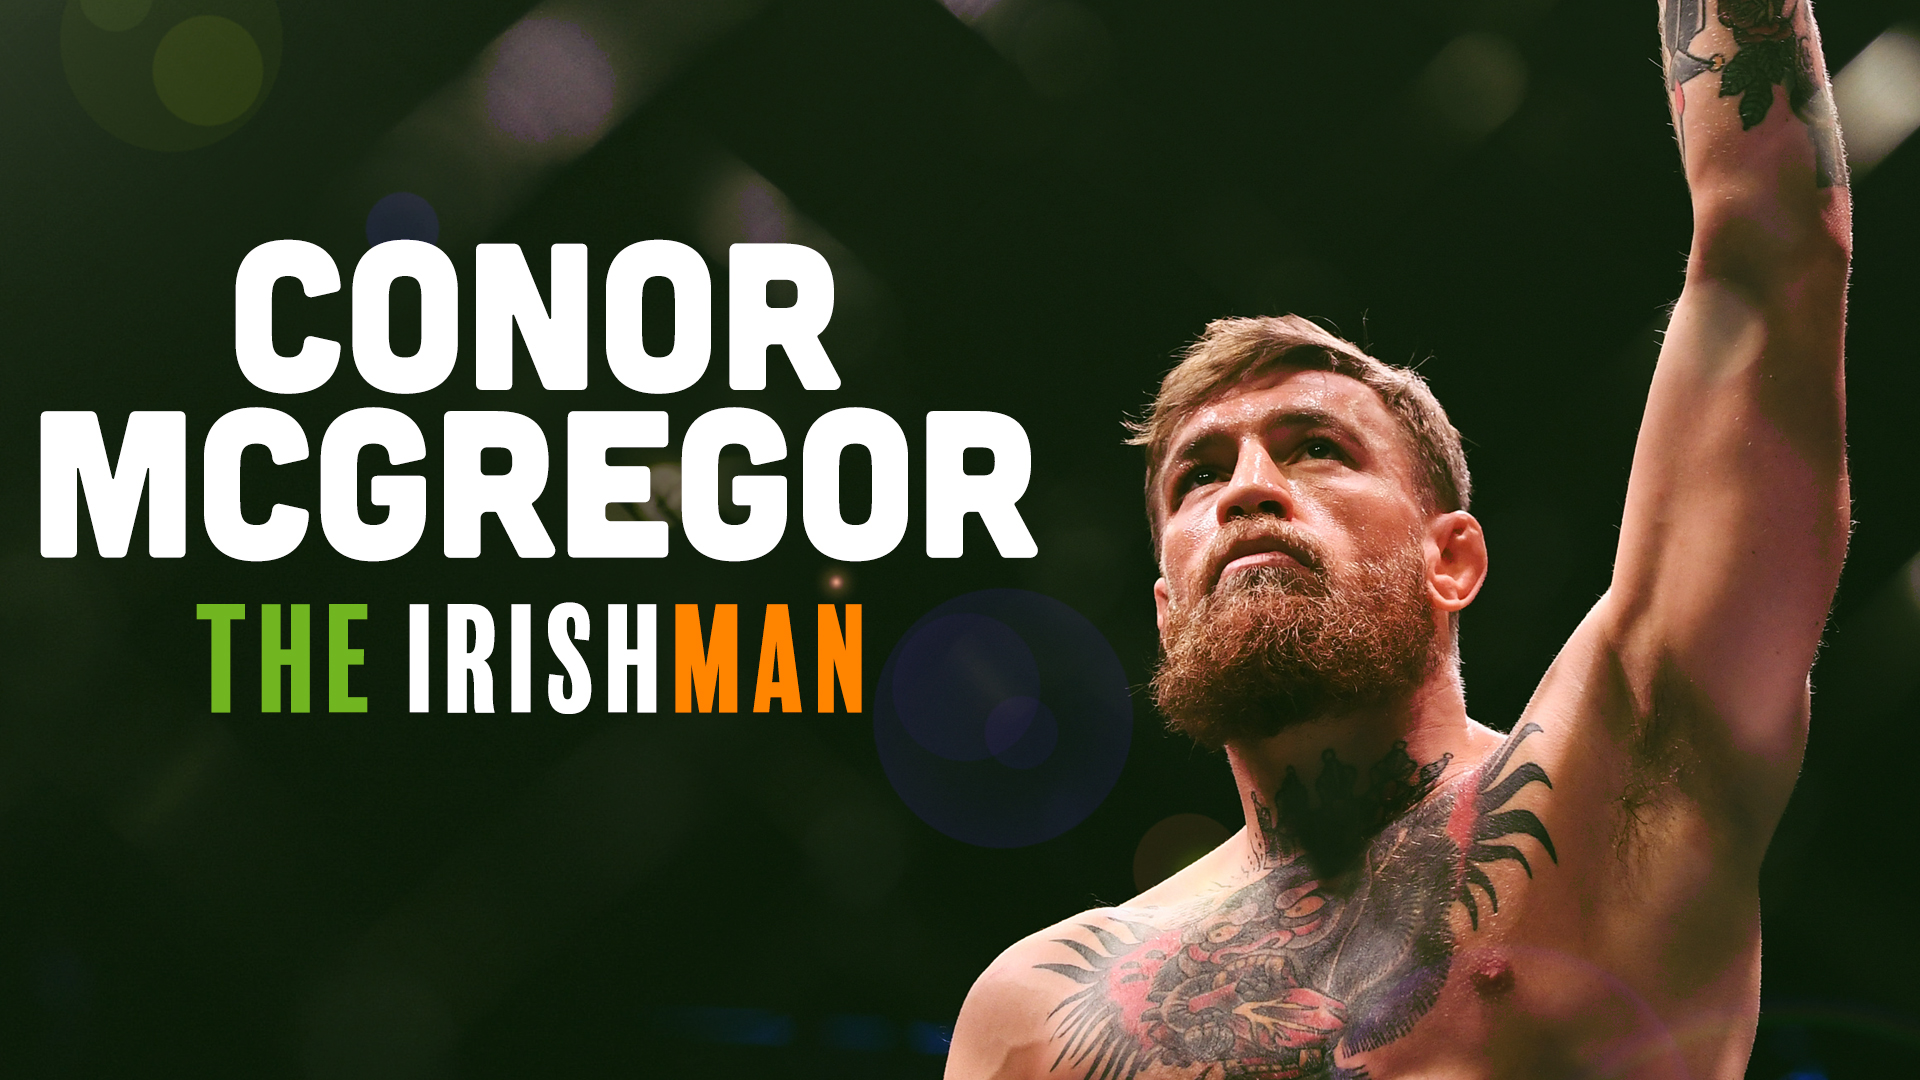 Conor McGregor: The Irishman